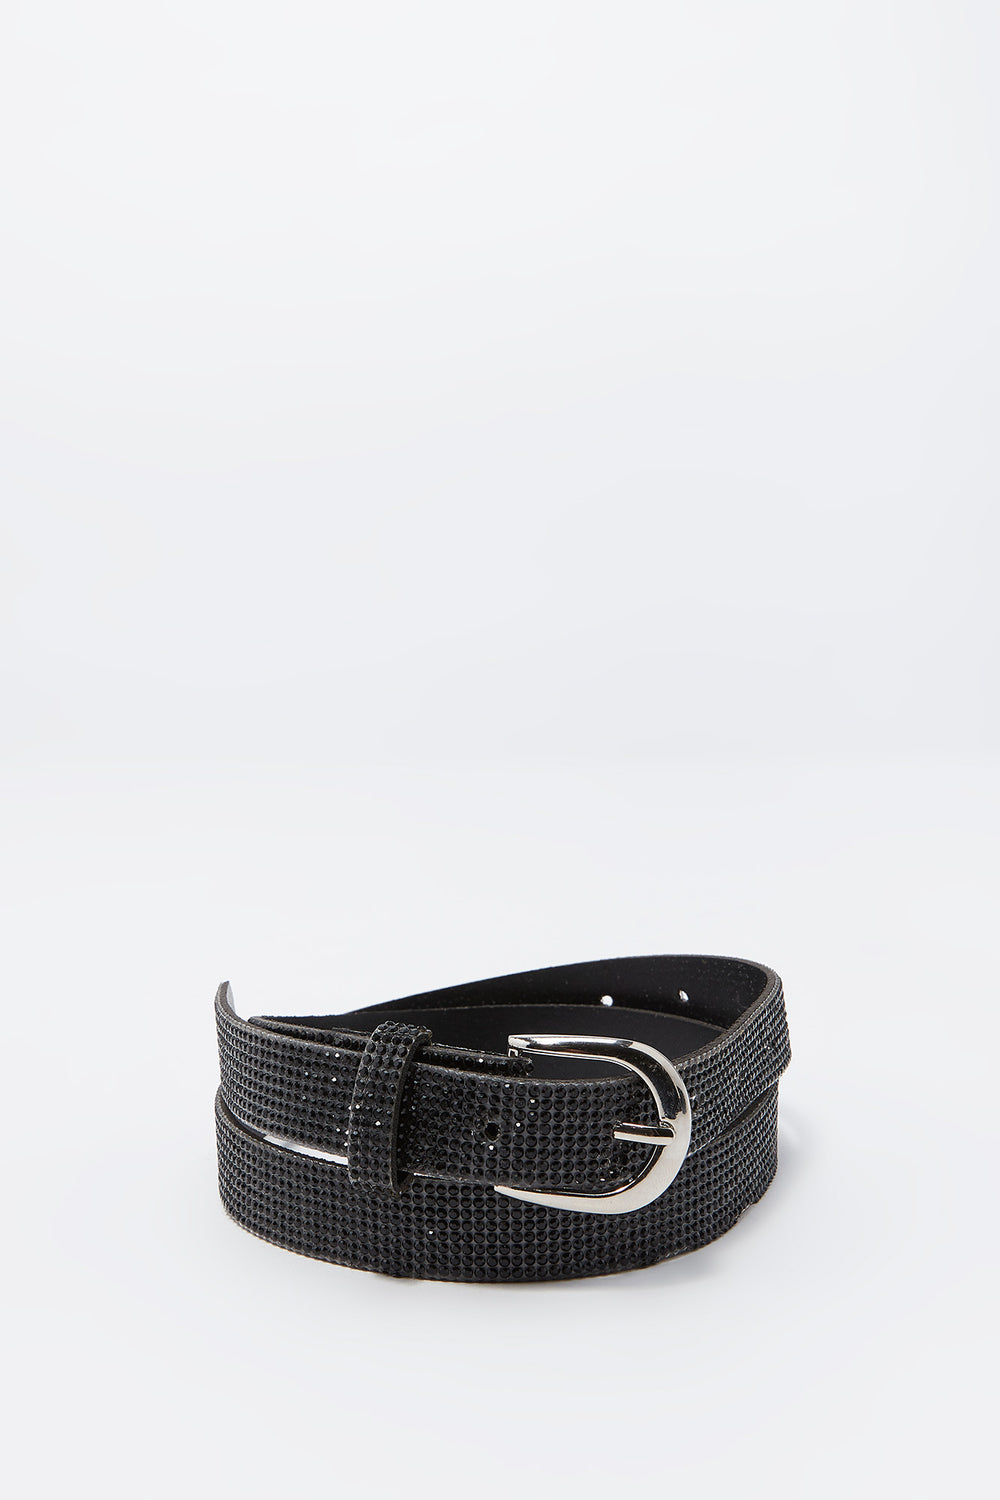 Rhinestone Buckle Belt Black